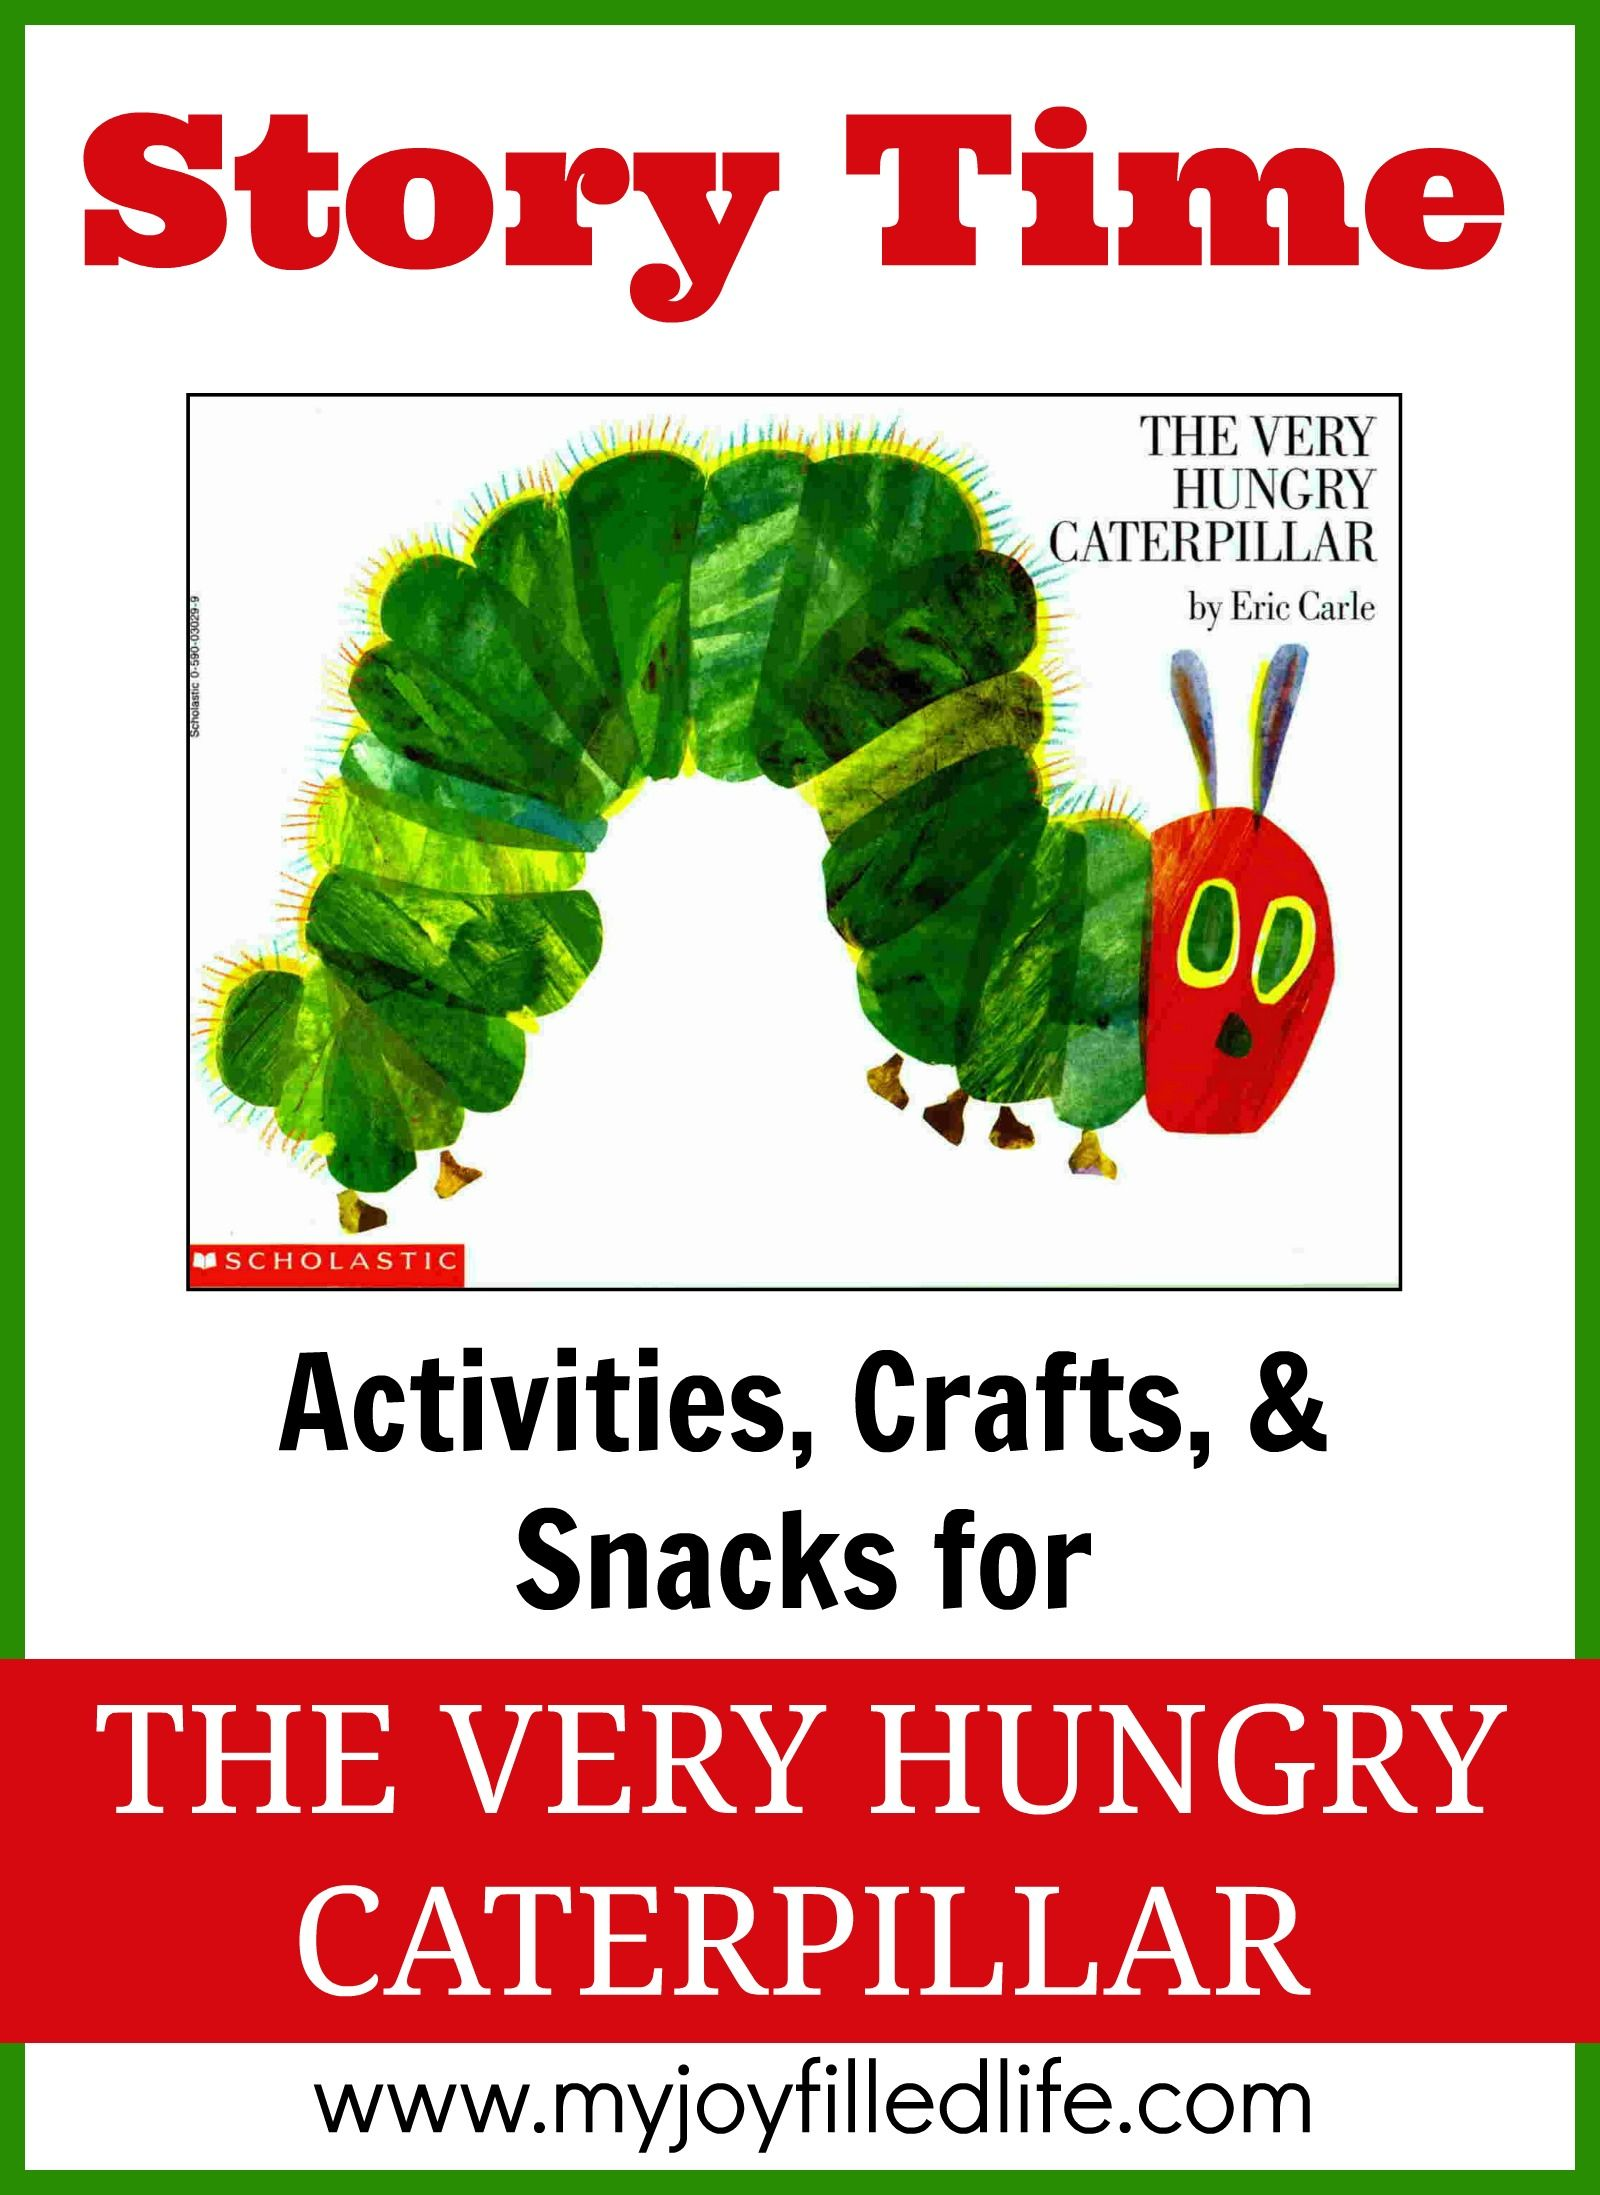 Coloring pages very hungry caterpillar - The Very Hungry Caterpillar Story Time Activities